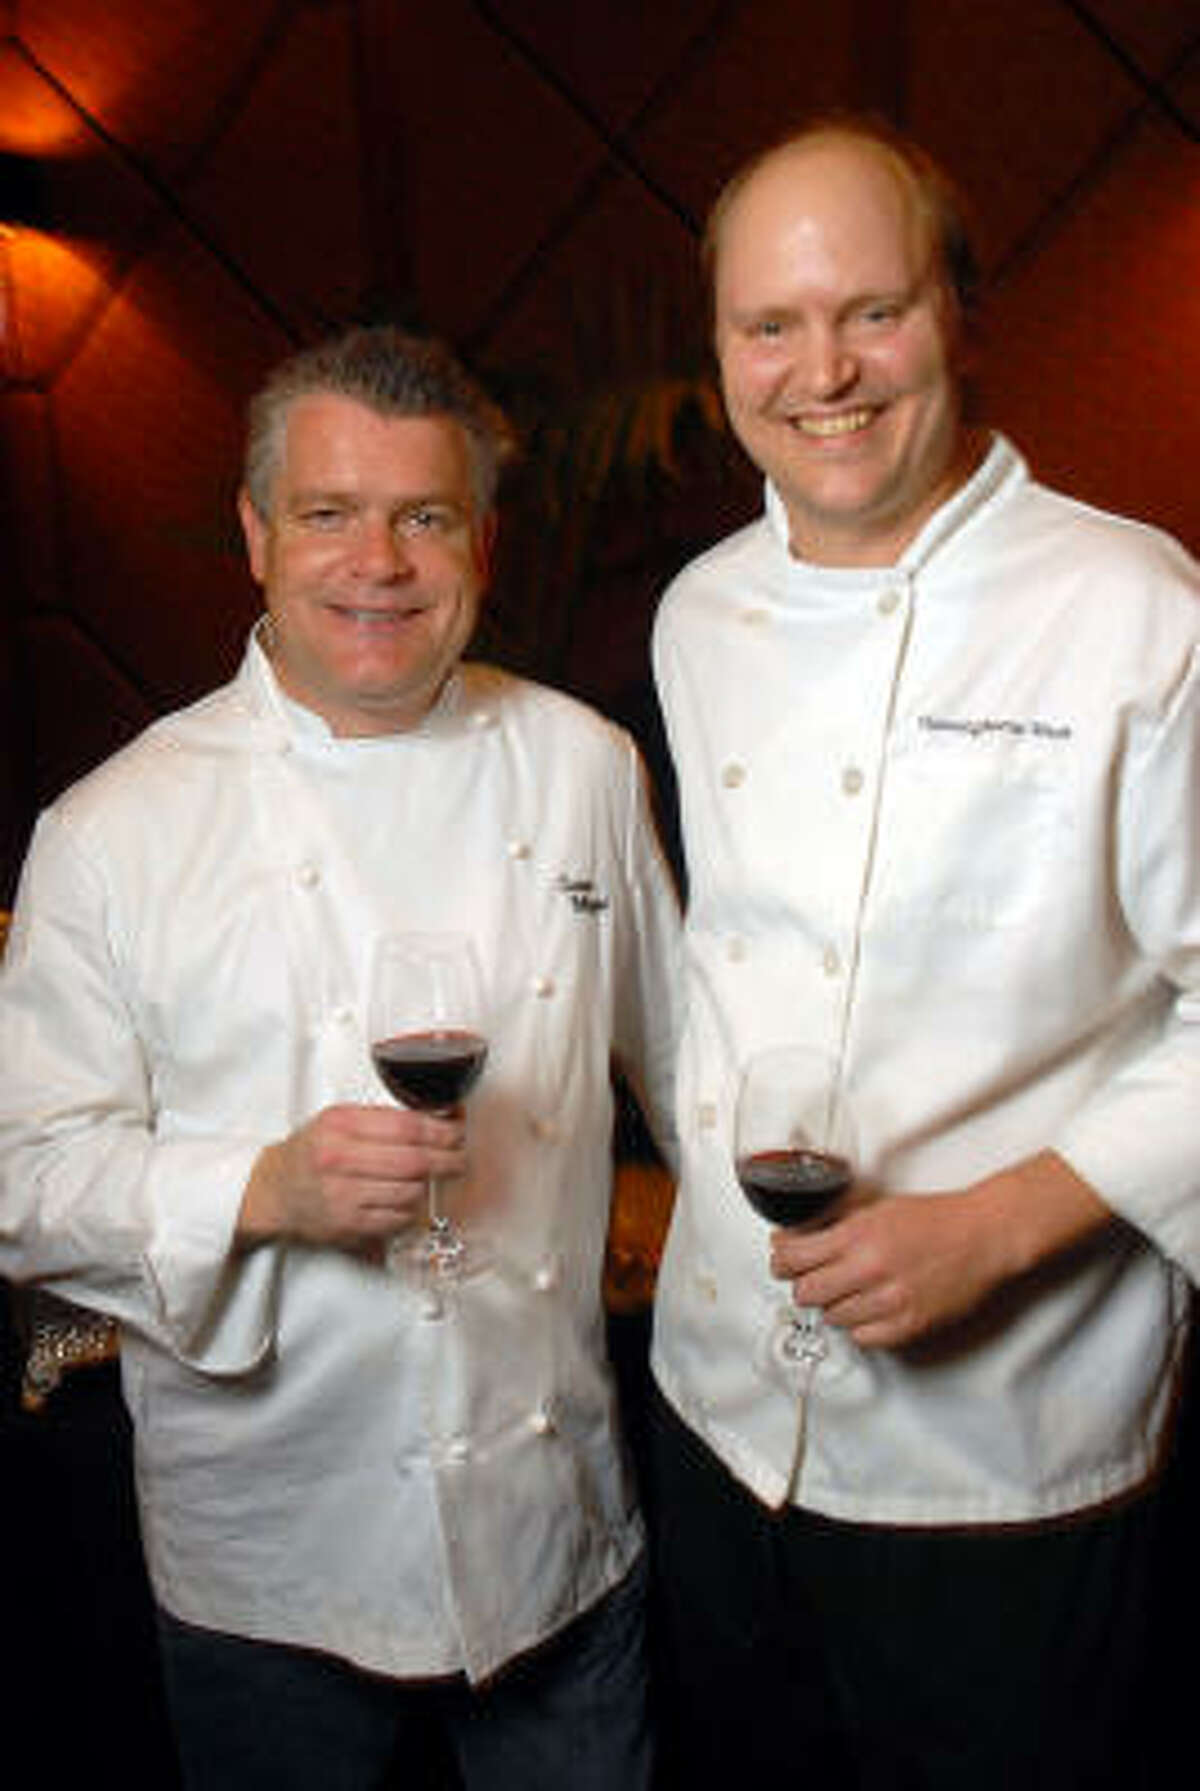 Luciano Pellegrini and Cunningham West toast the new restaurant.